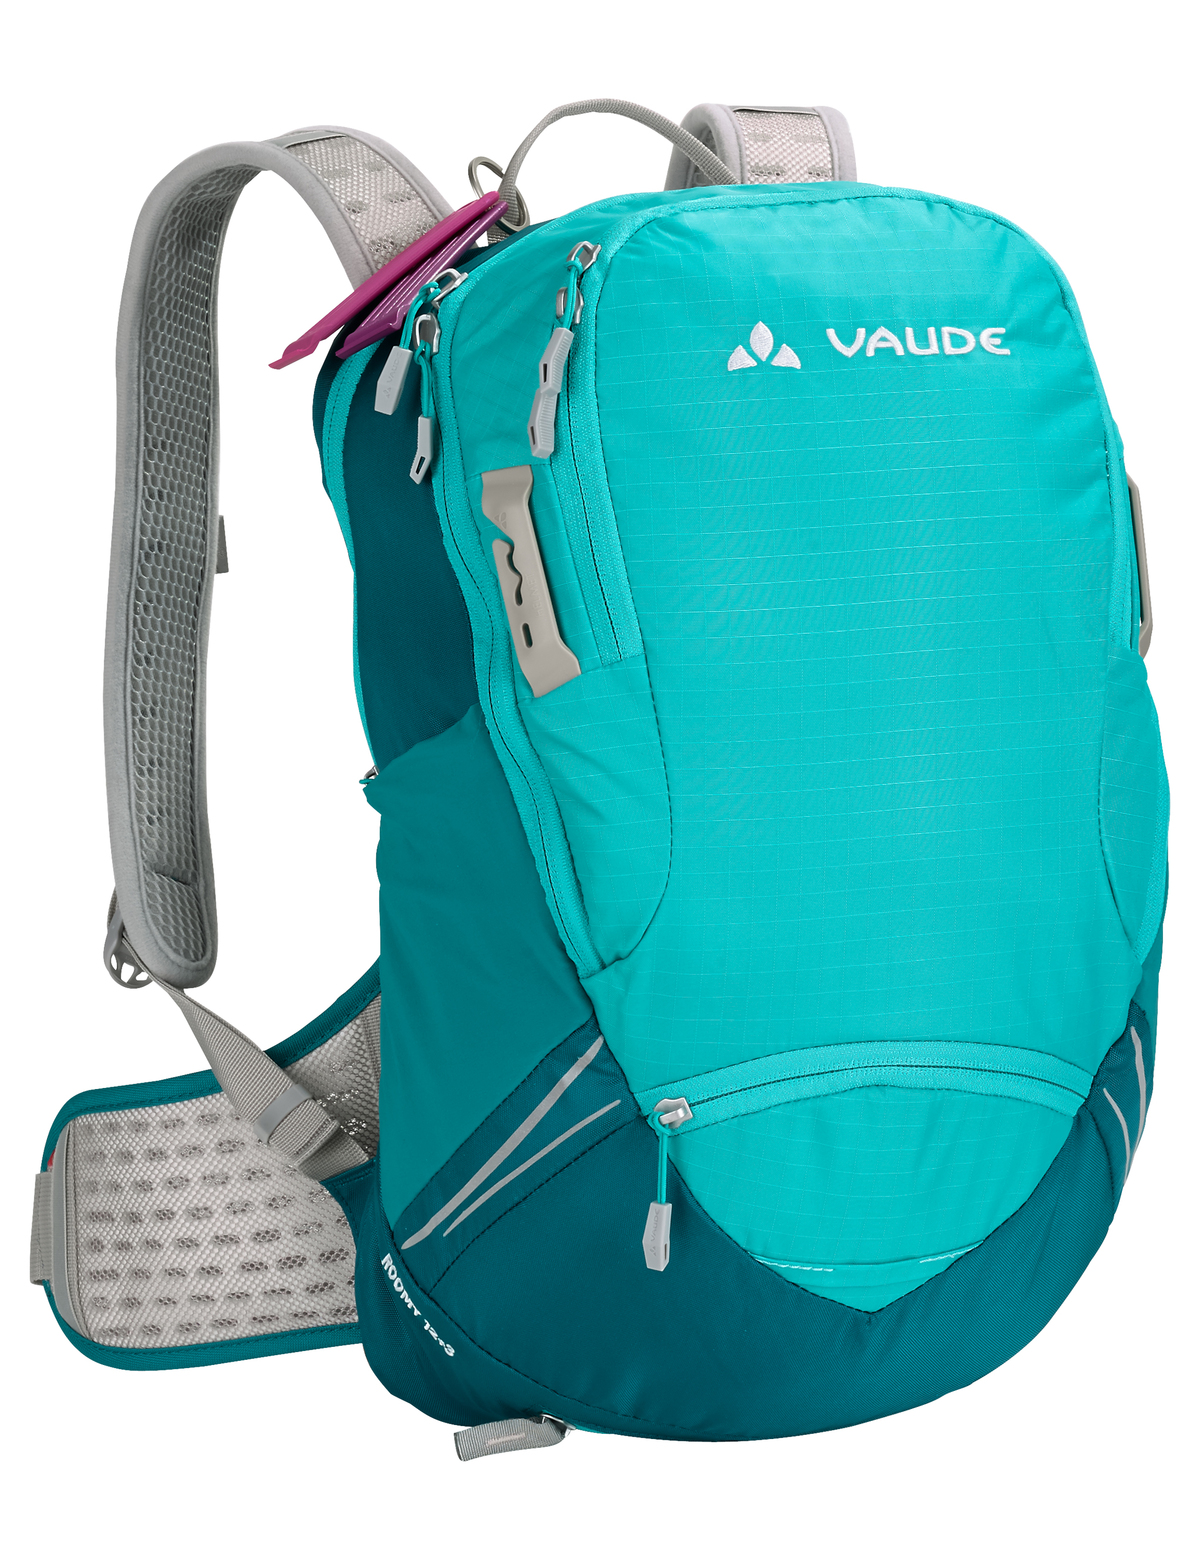 VAUDE Roomy 17+3 reef  - schneider-sports